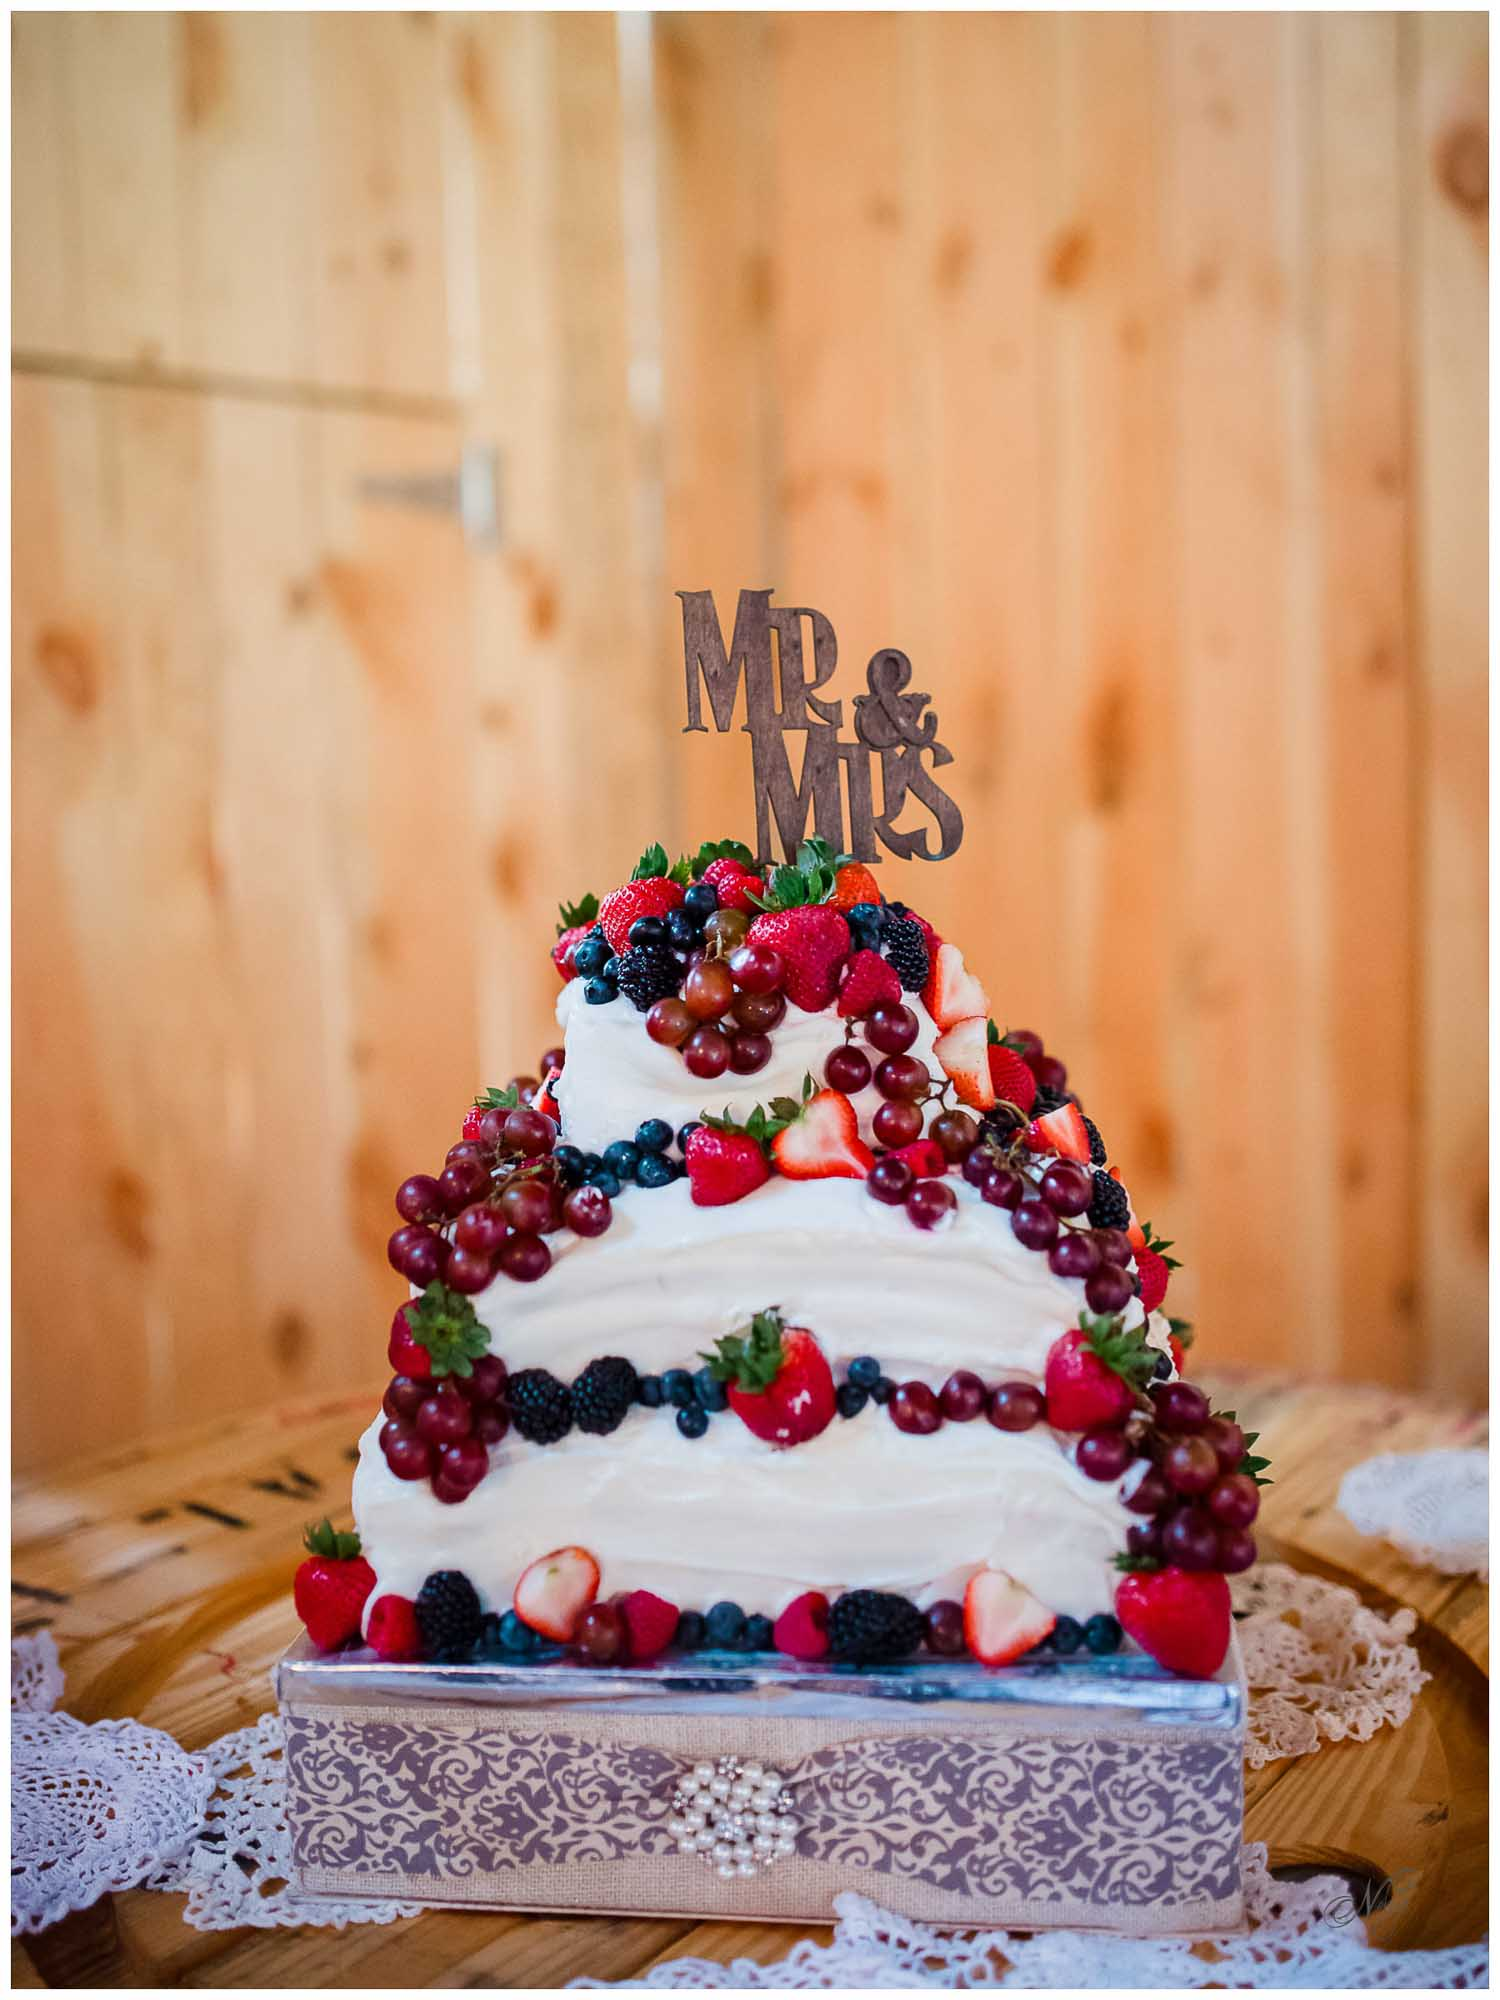 fruit themed wedding cake at Stinnett Farm Barn wedding